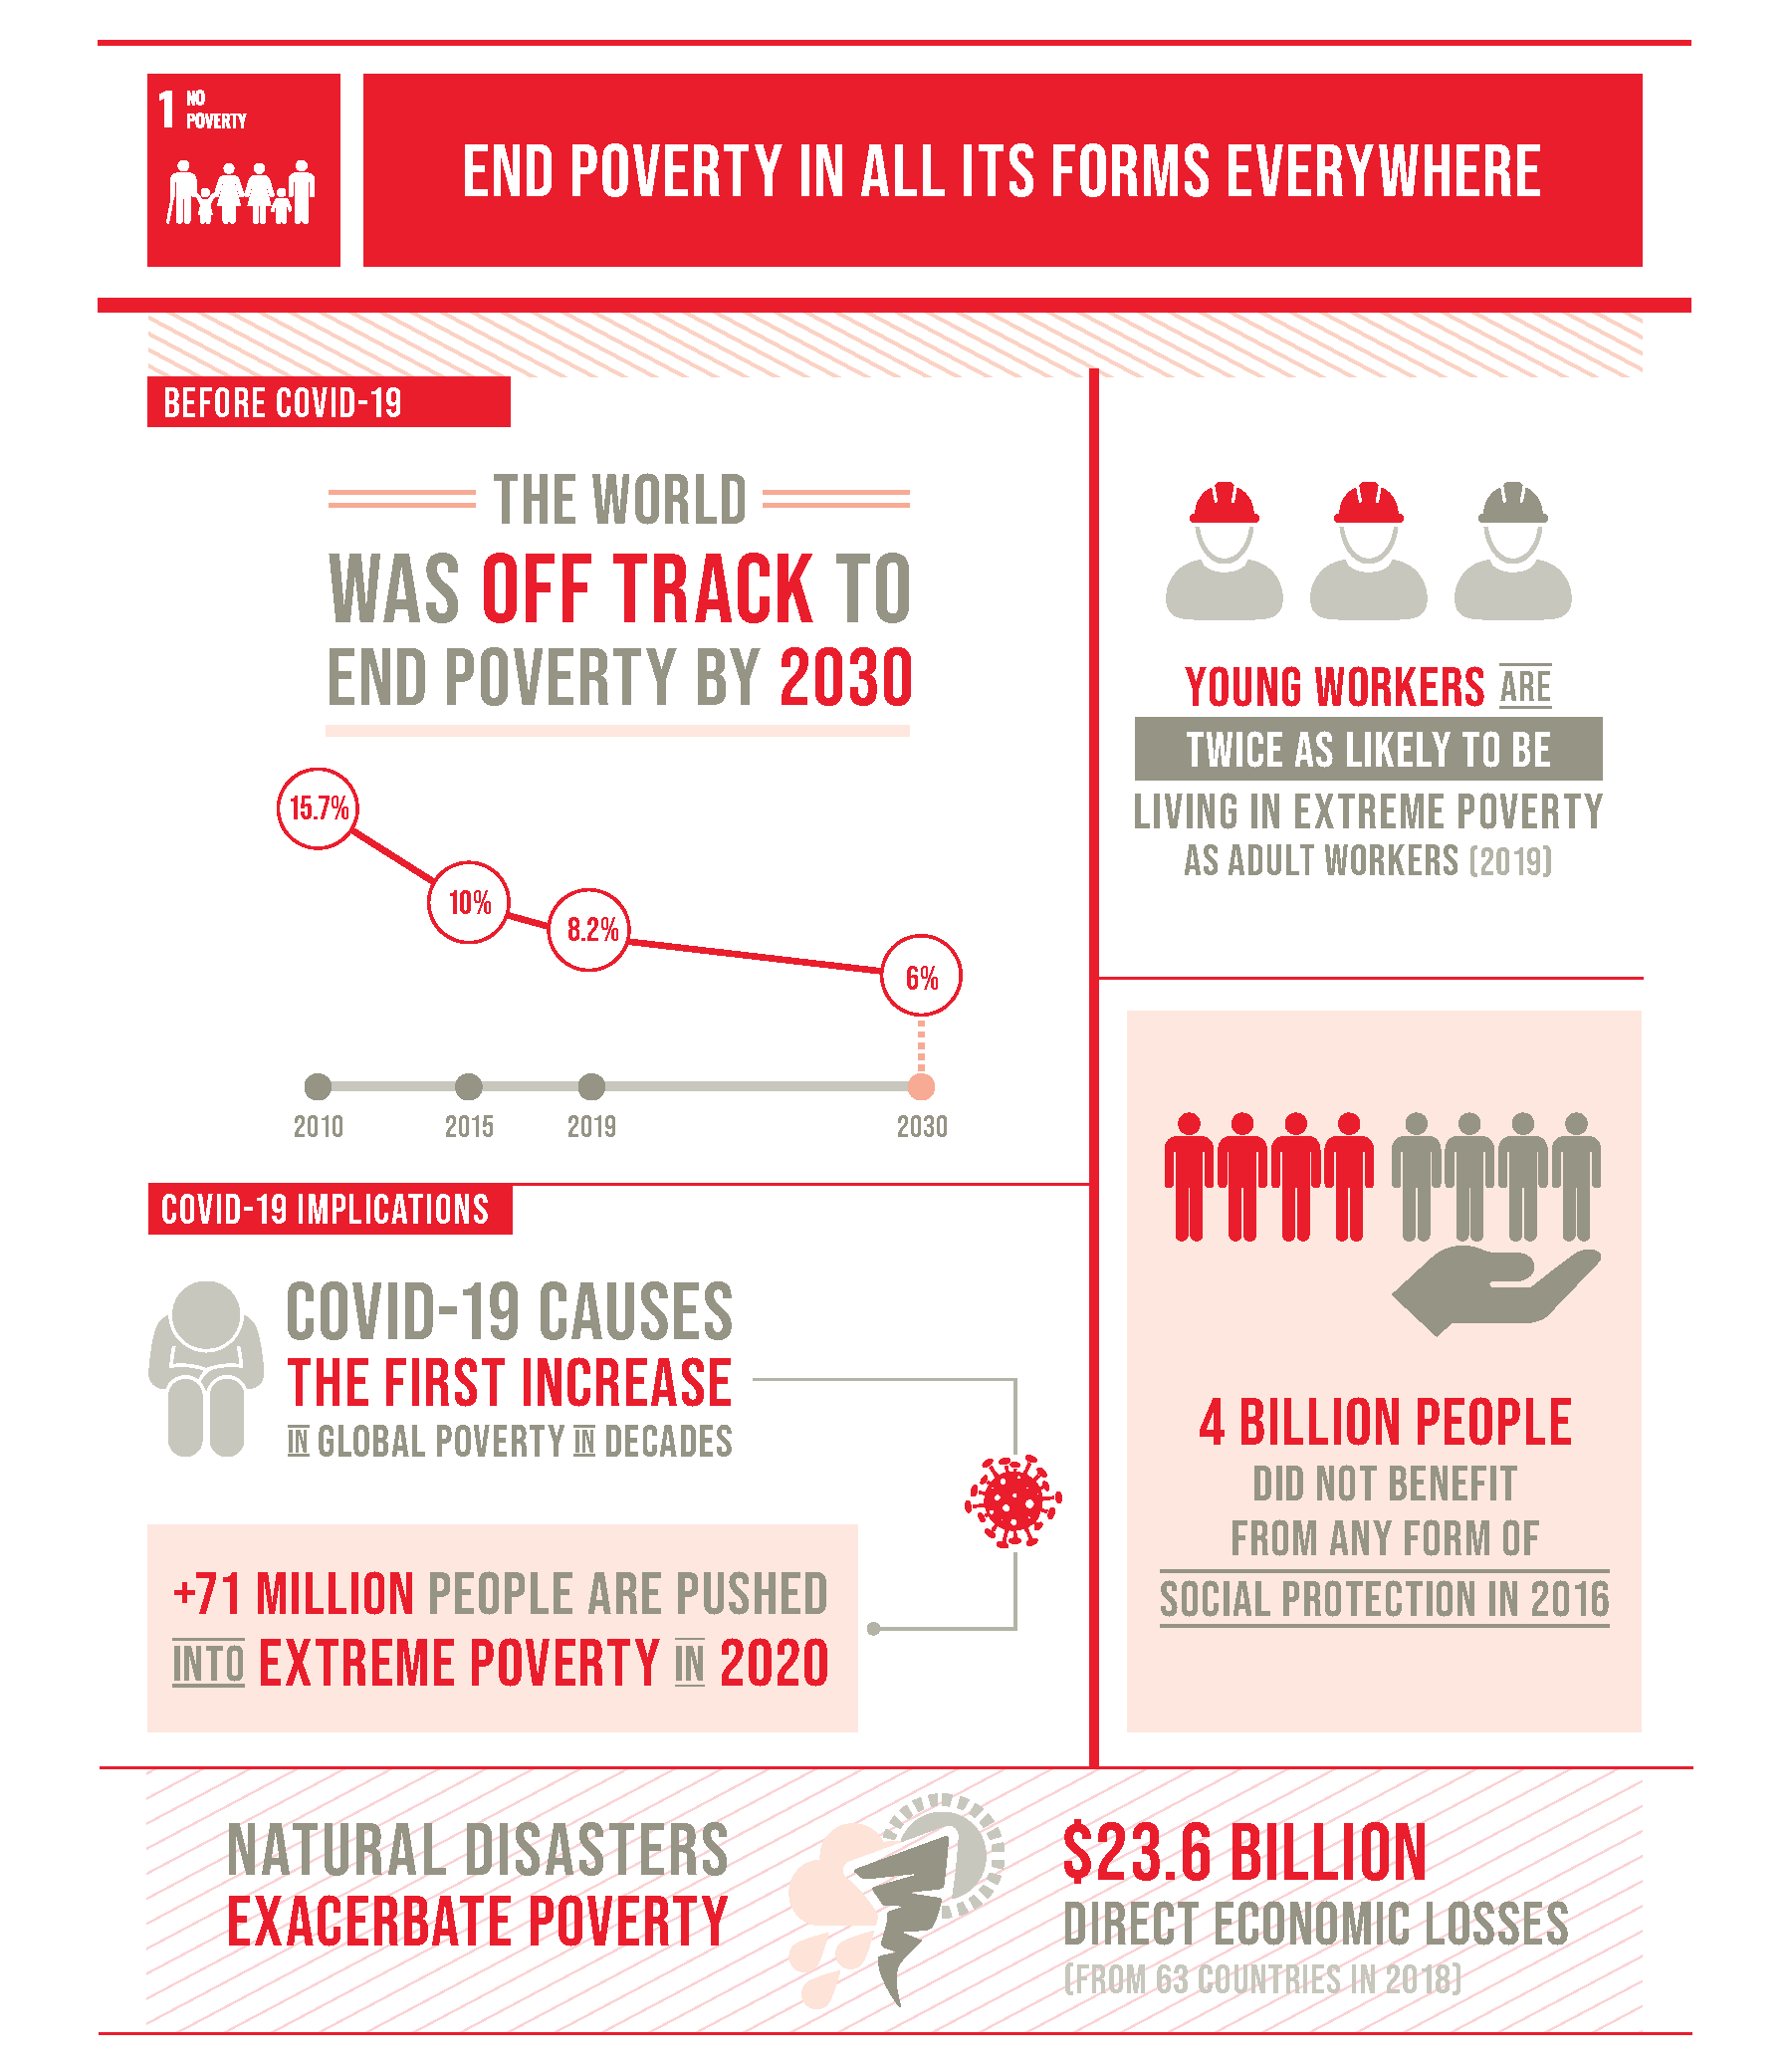 Goal 1 infographic, source: https://unstats.un.org/sdgs/report/2020/The-Sustainable-Development-Goals-Report-2020.pdf